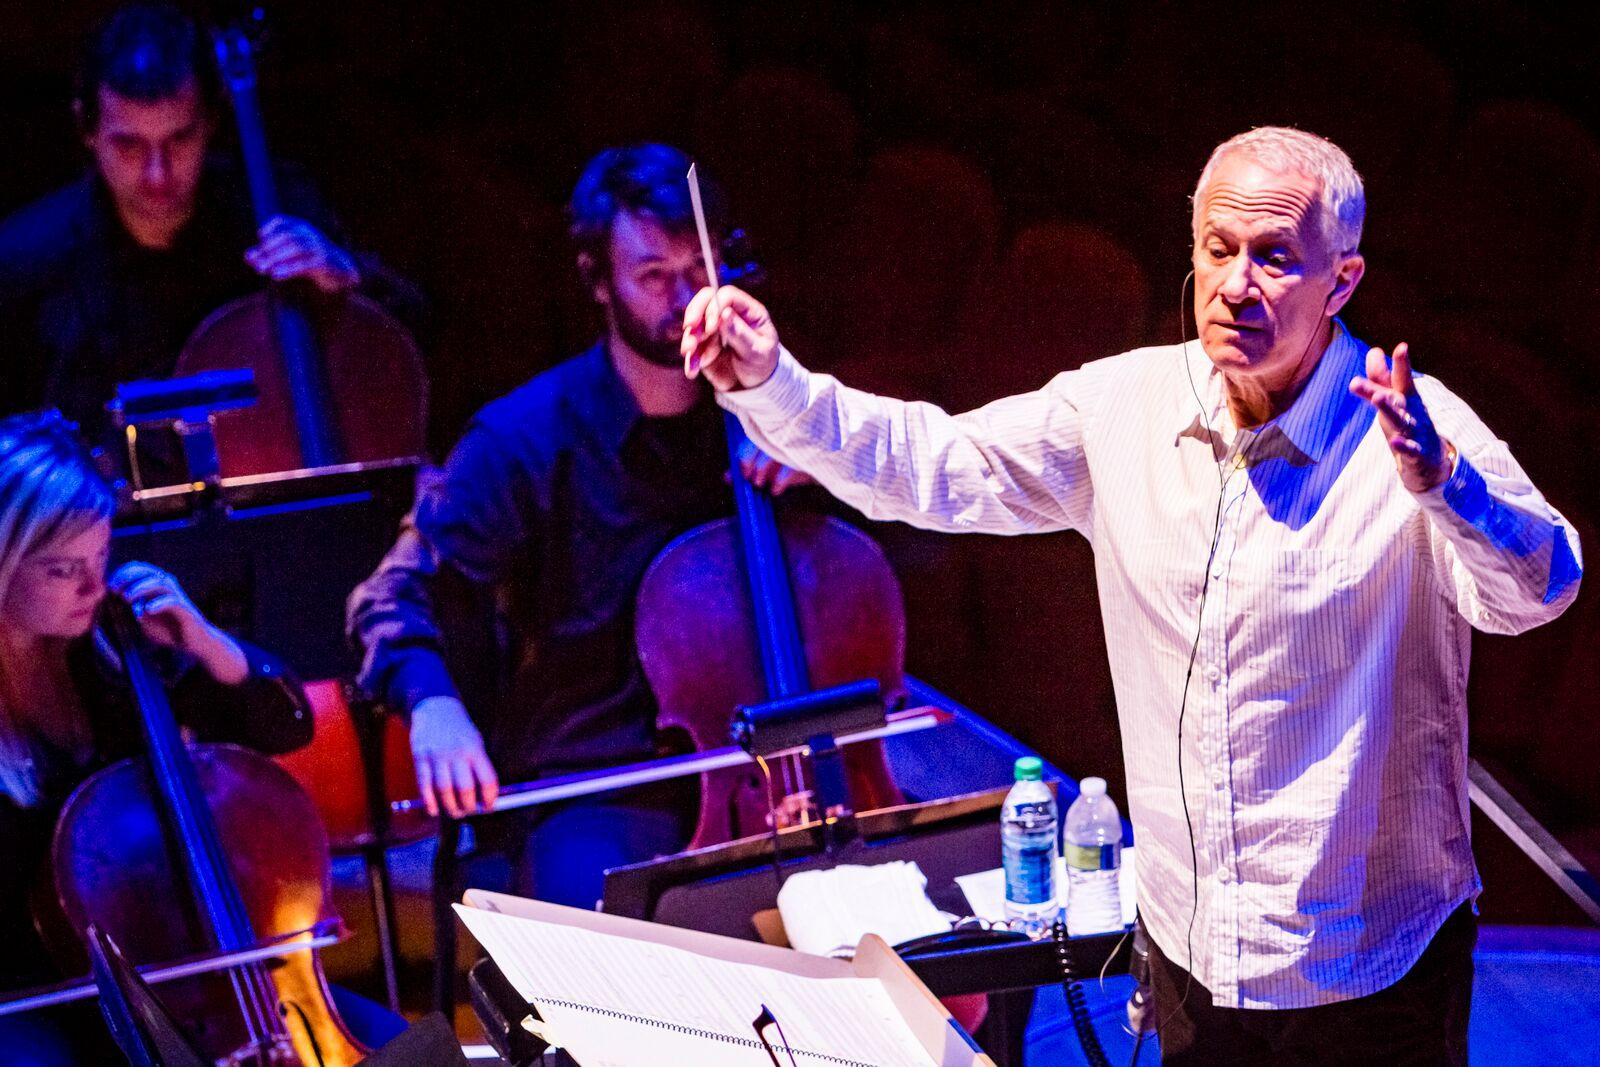 James Newton Howard Concert, Budapest Aréna, 5 November